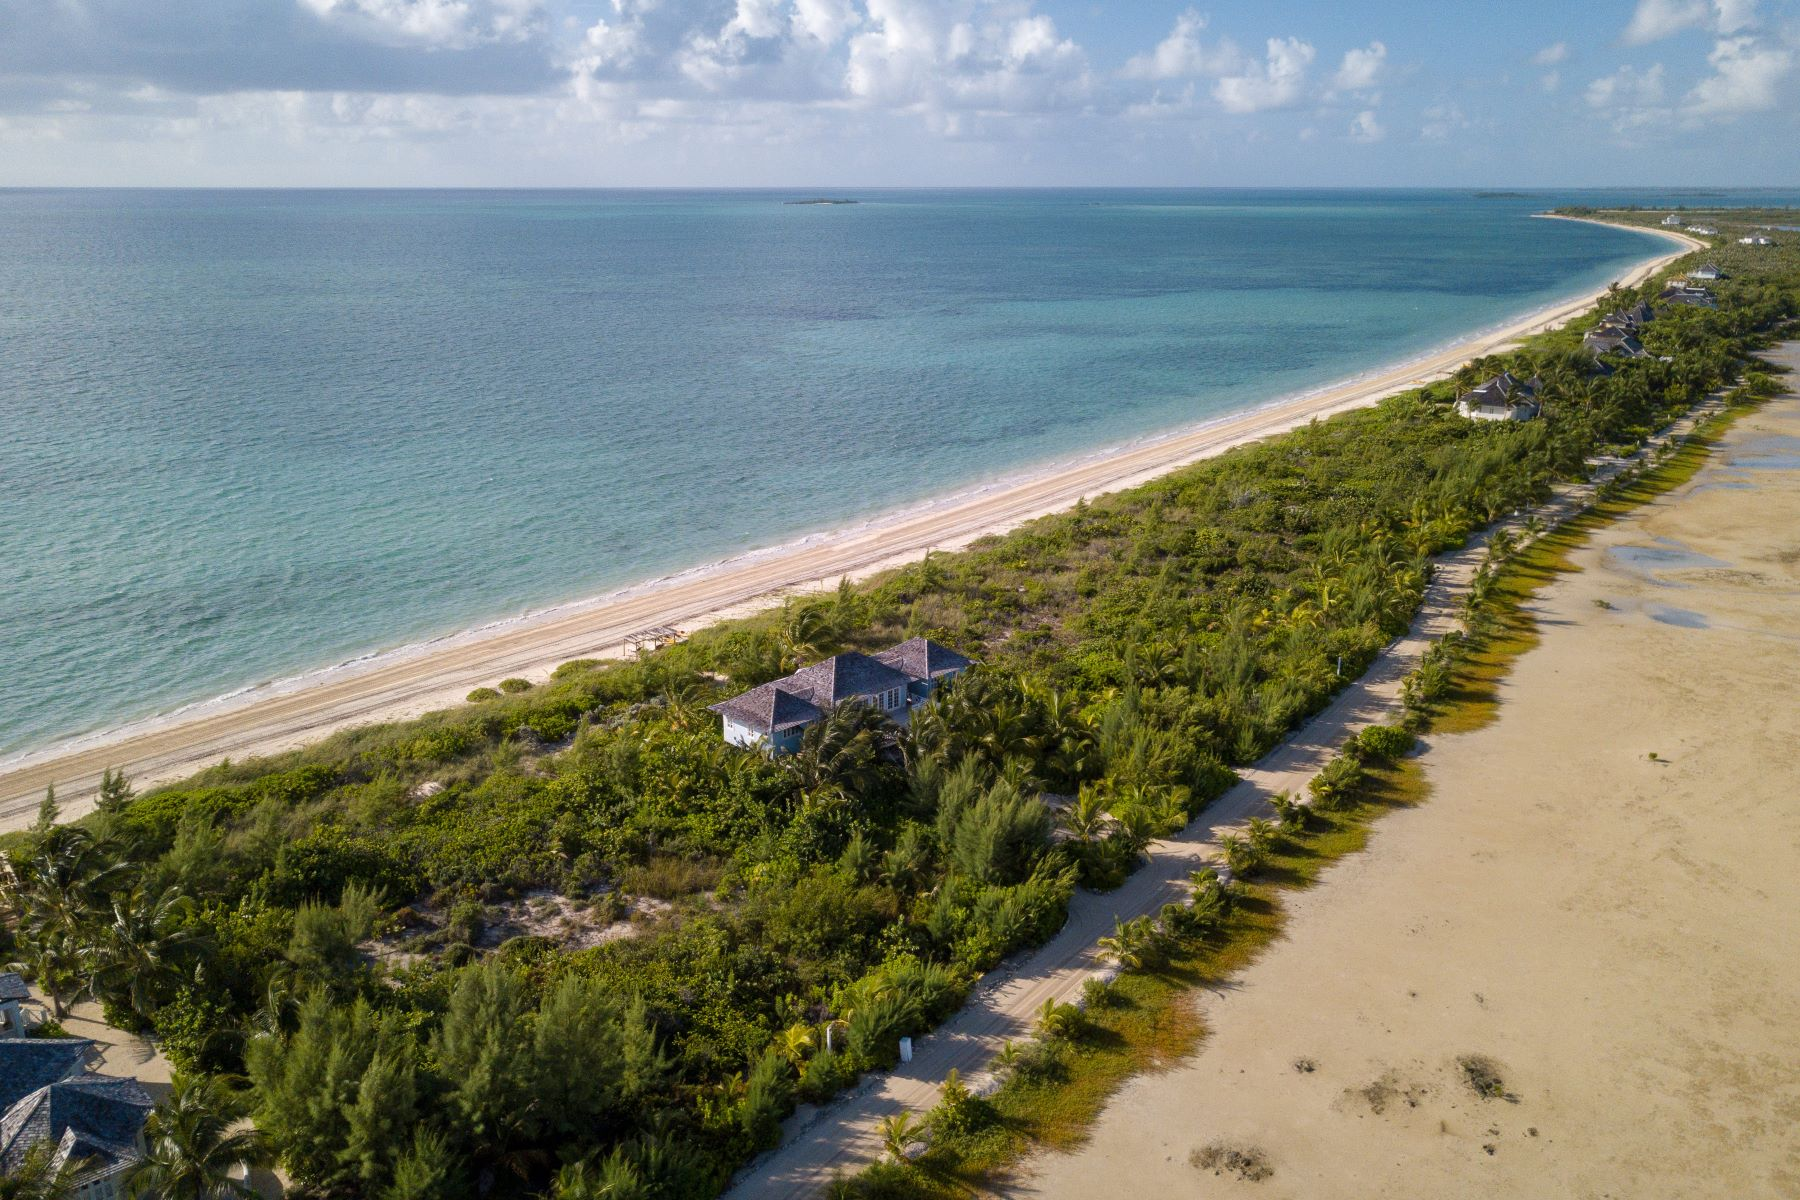 Land for Sale at Kumquat Lot on Kamalame Cay, Andros Kamalame Cay, Andros Bahamas